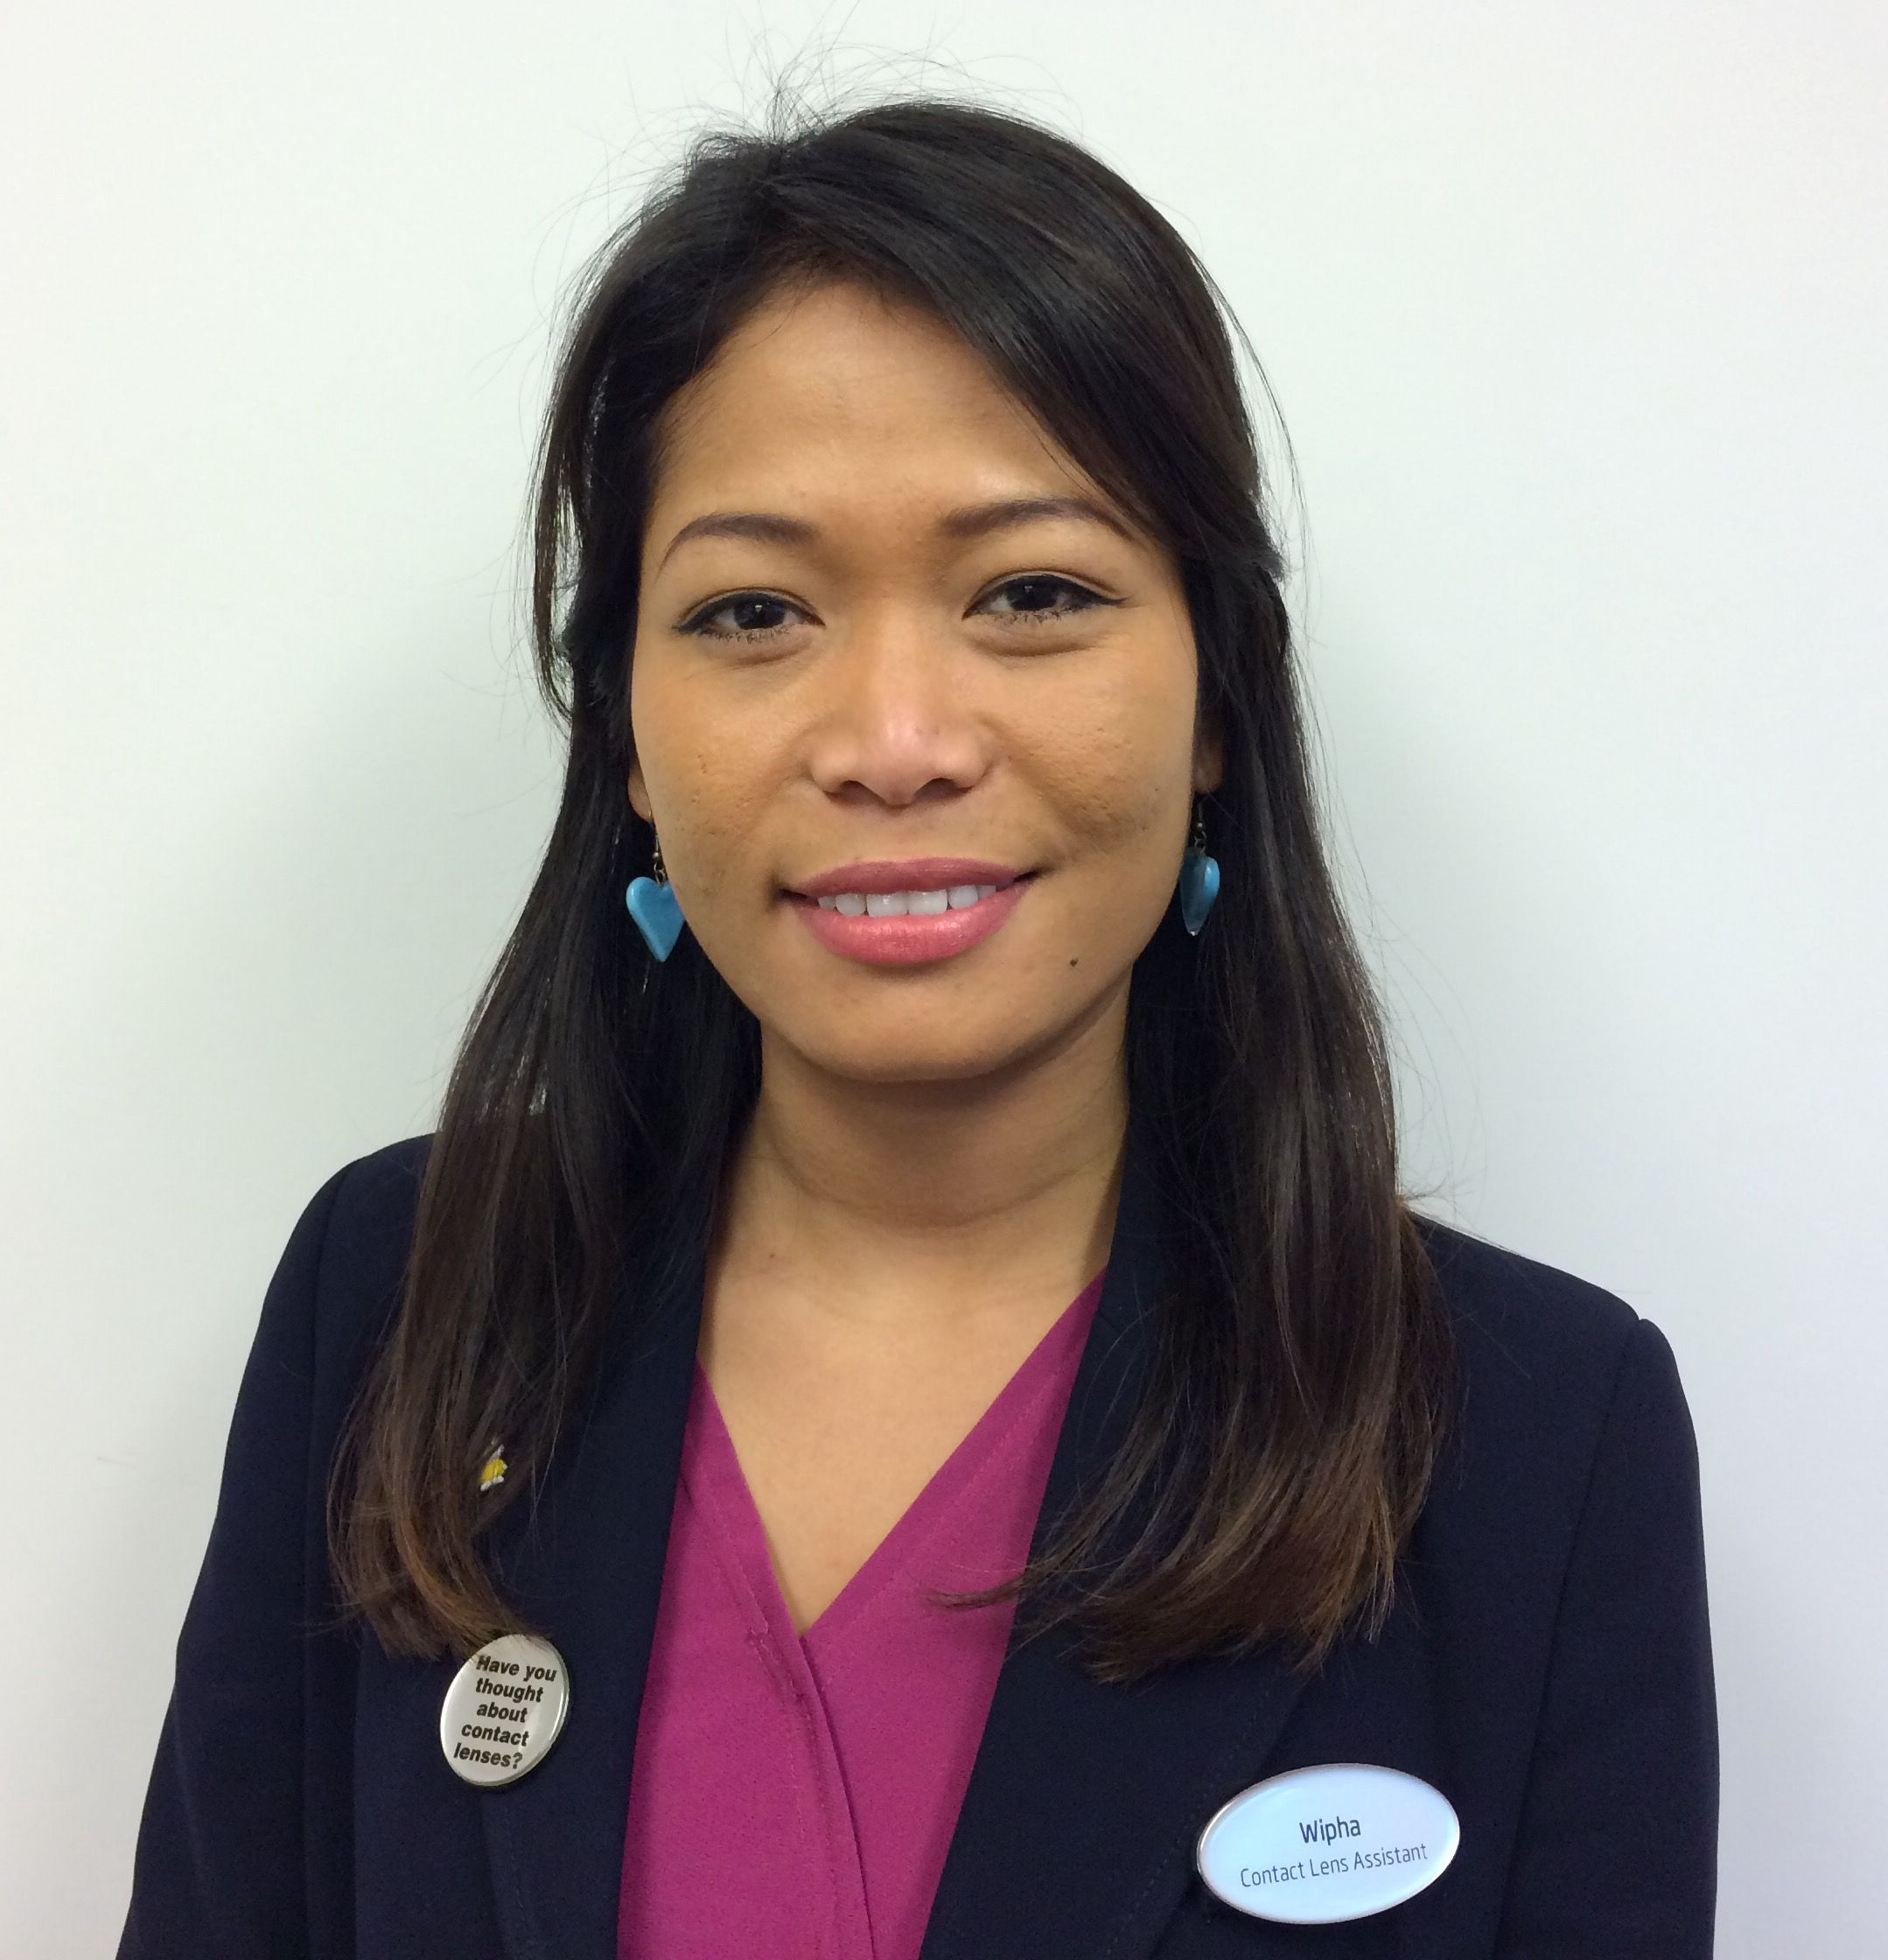 Wipha Stothart, contact lens assistant at Specsavers Worthing